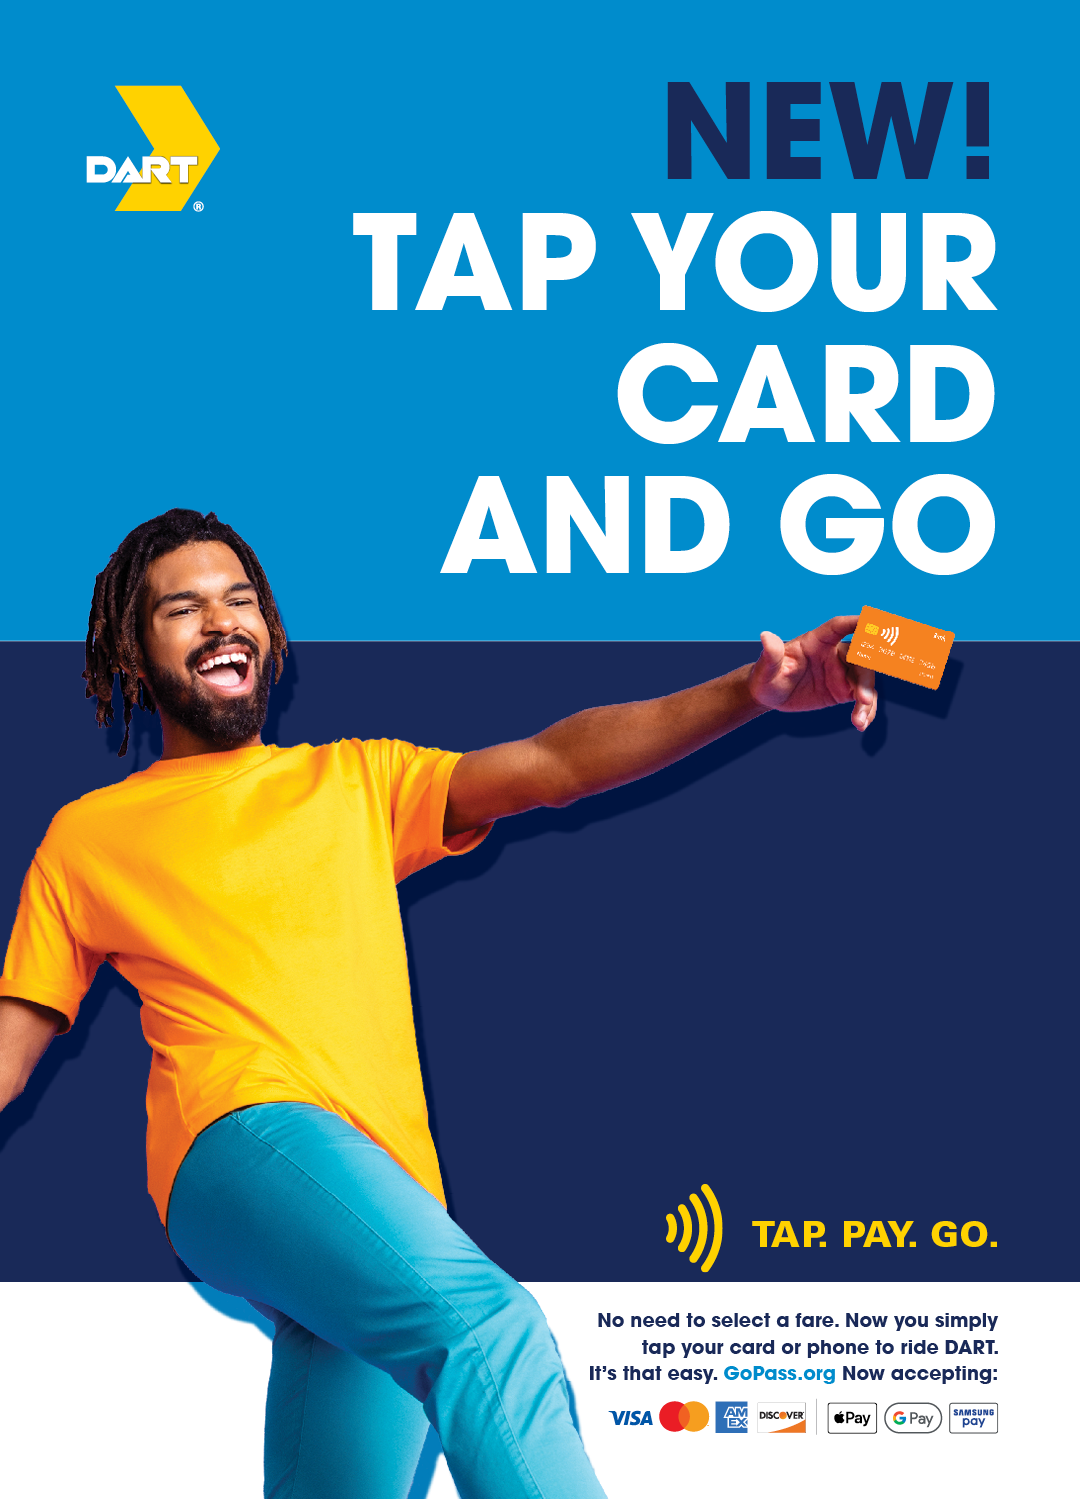 DART Adds Contactless Fare Payment